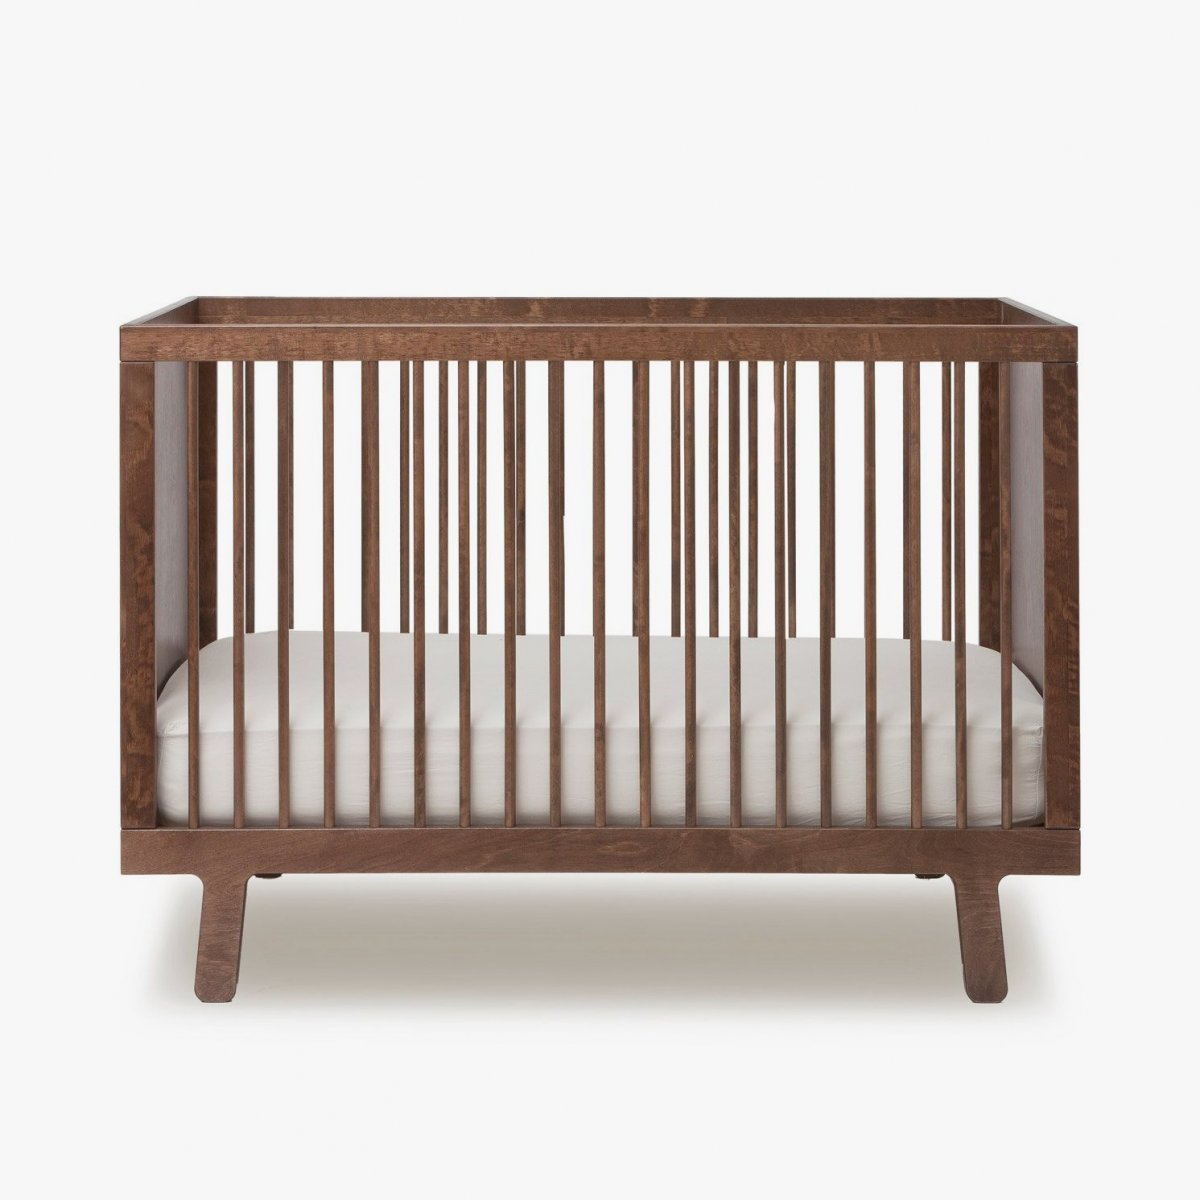 Sparrow Crib, walnut.